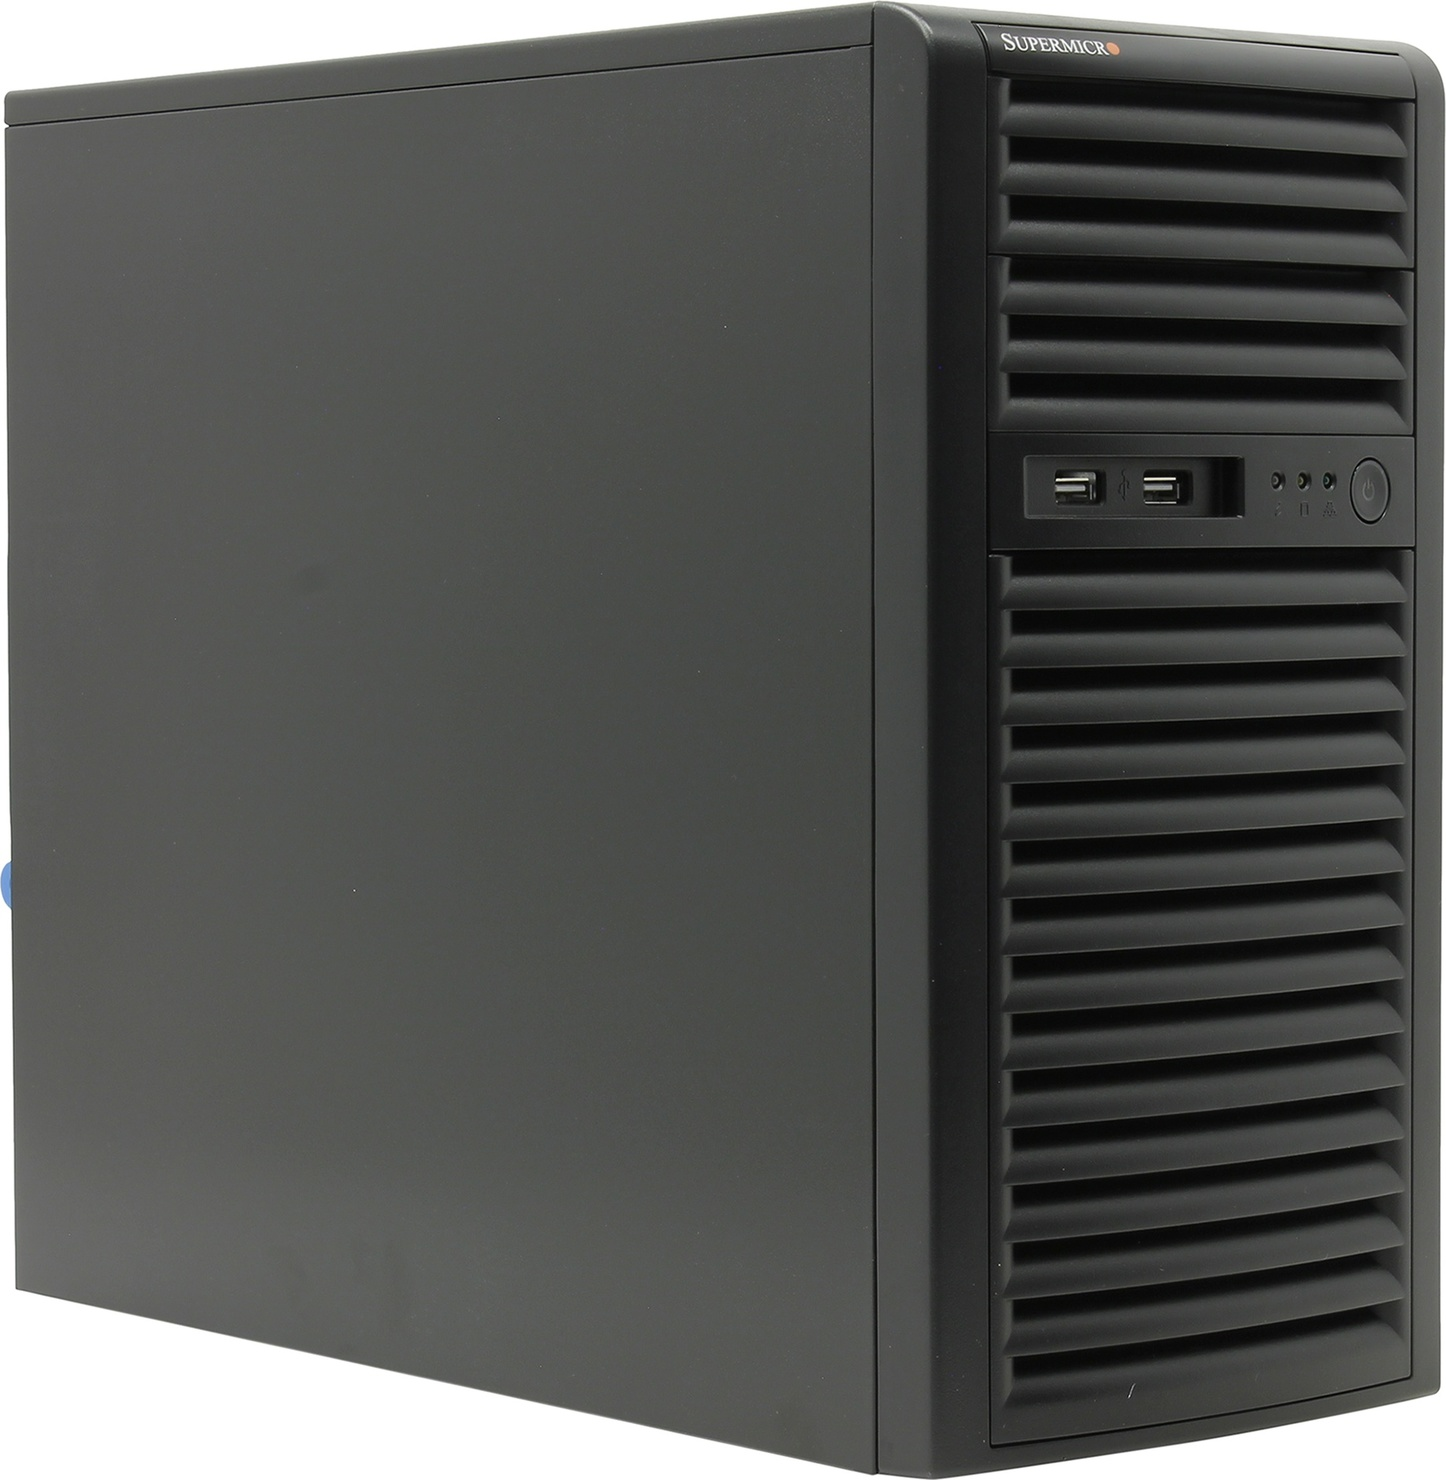 Сервер SERVER Tower 0110 0662613/1xE3-1220V6/1x8gb/2x1tb/1x300w сервер одесса